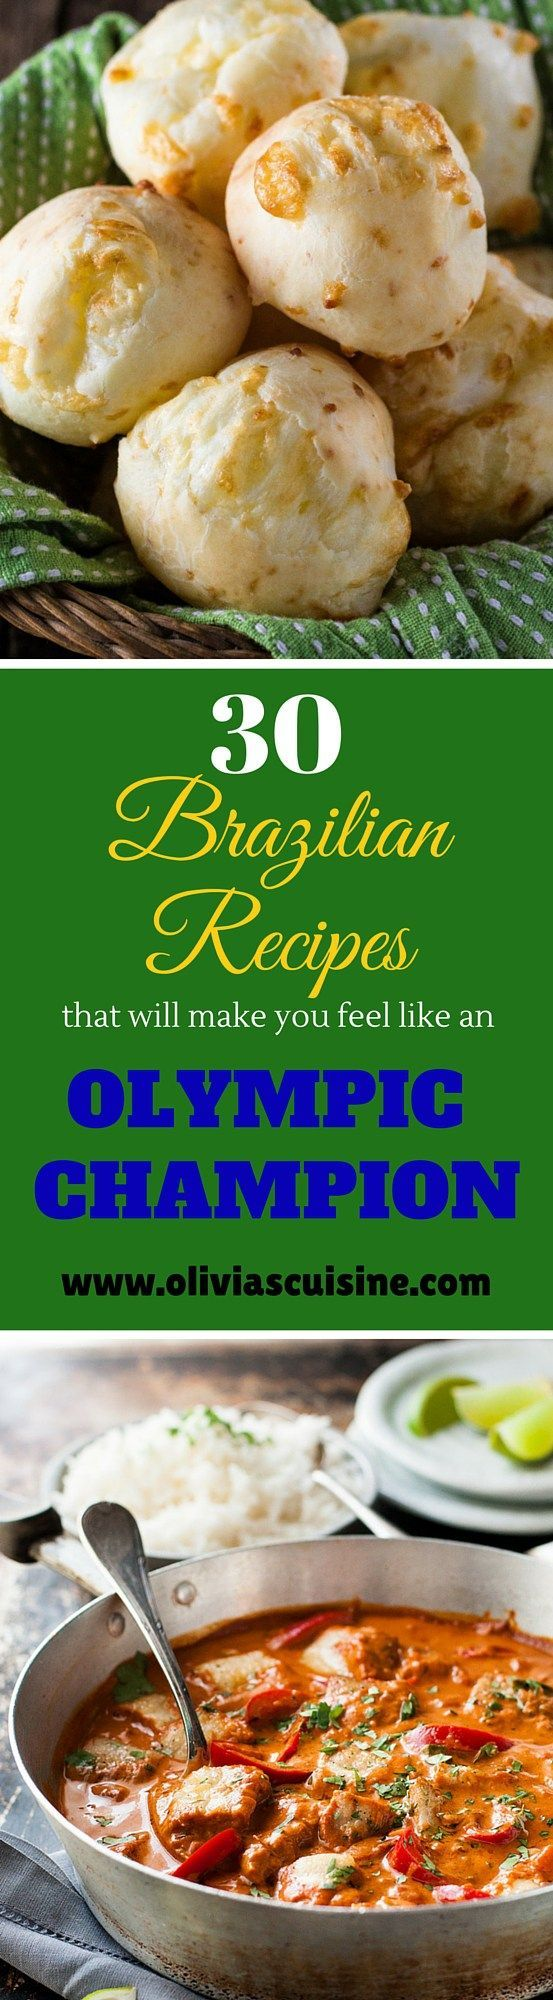 30 Authentic Brazilian Recipes That Will Make You Feel Like A Olympic Champion | http://www.oliviascuisine.com | The best of the best, these classic dishes of Brazilian cuisine will make you feel like you're in Rio!